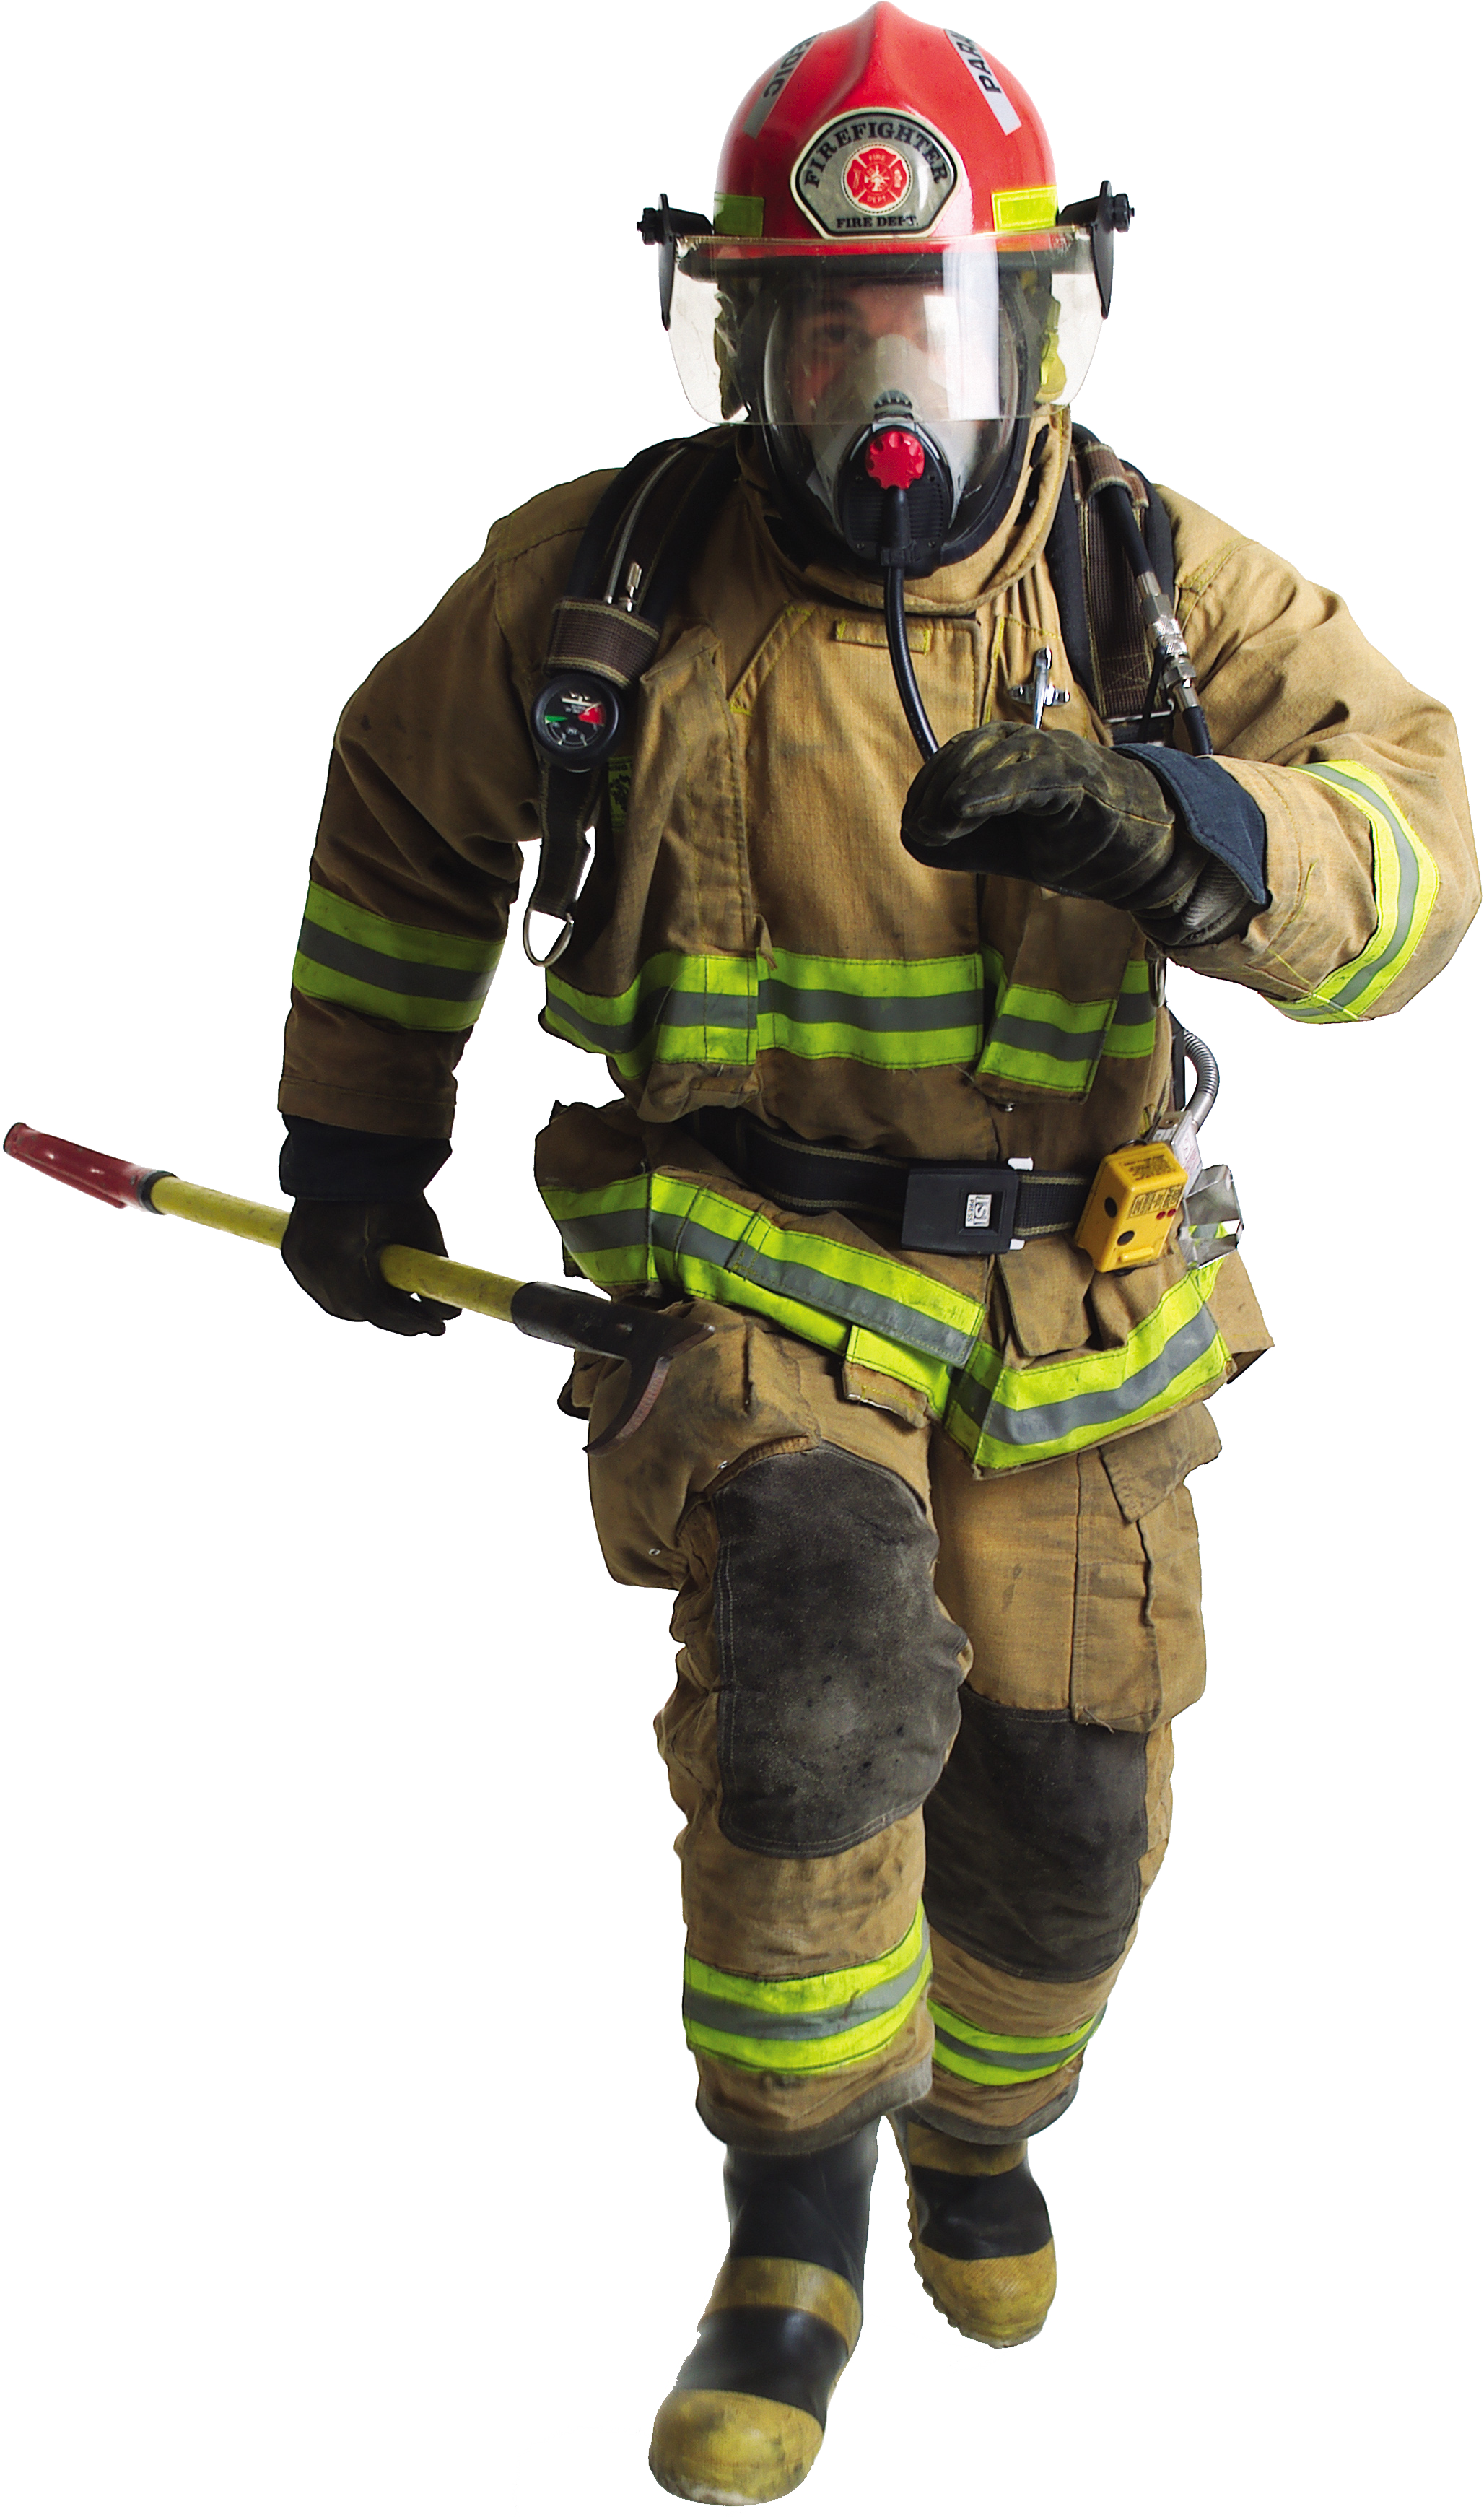 Fireman clipart background. Firefighter png image purepng